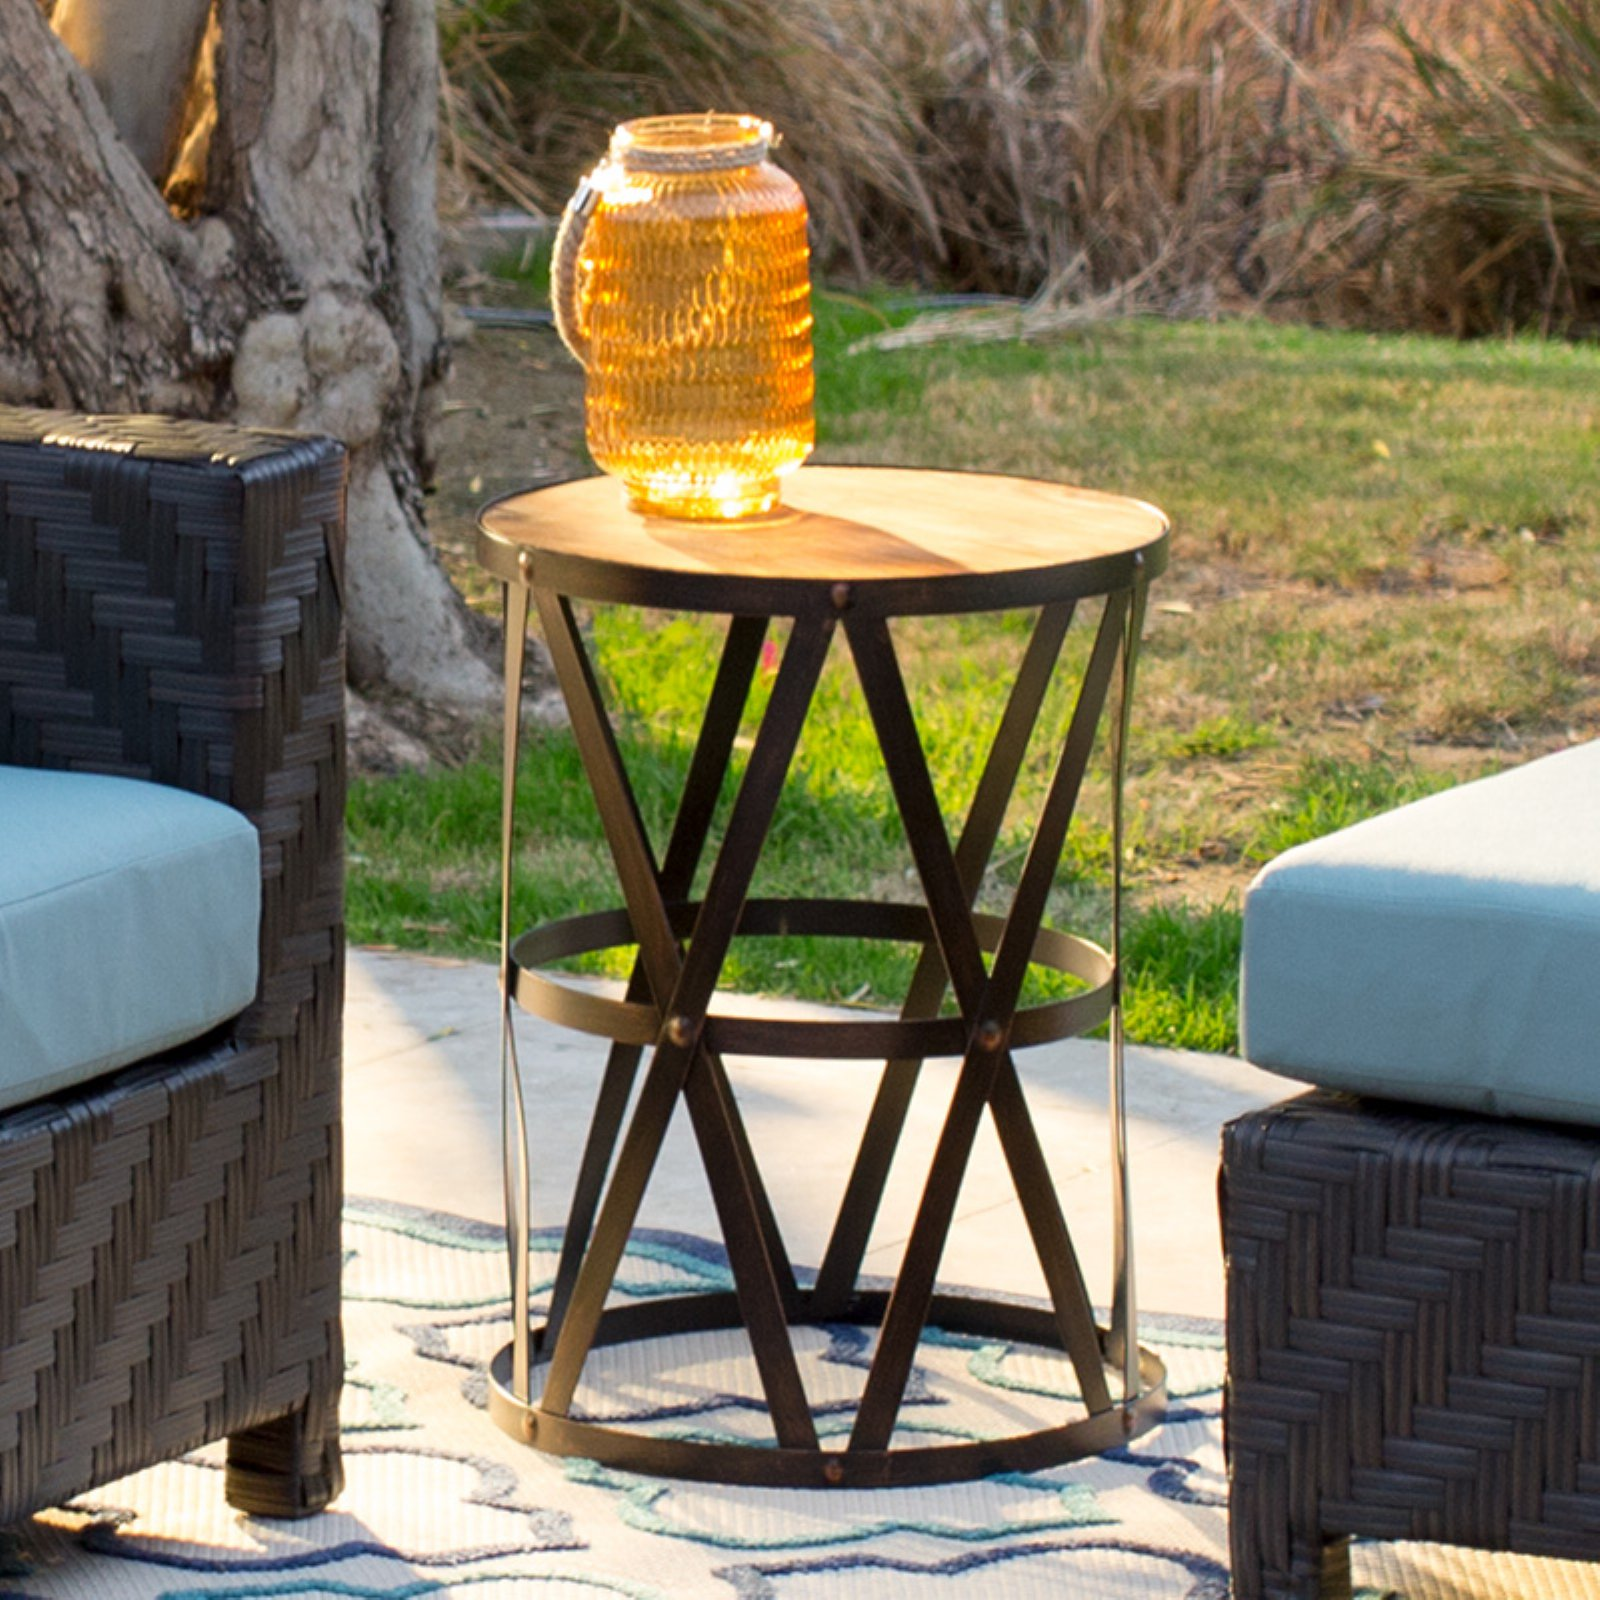 Coral Coast Sarah 17-in. Round Metal Patio Side Table with Wood Top